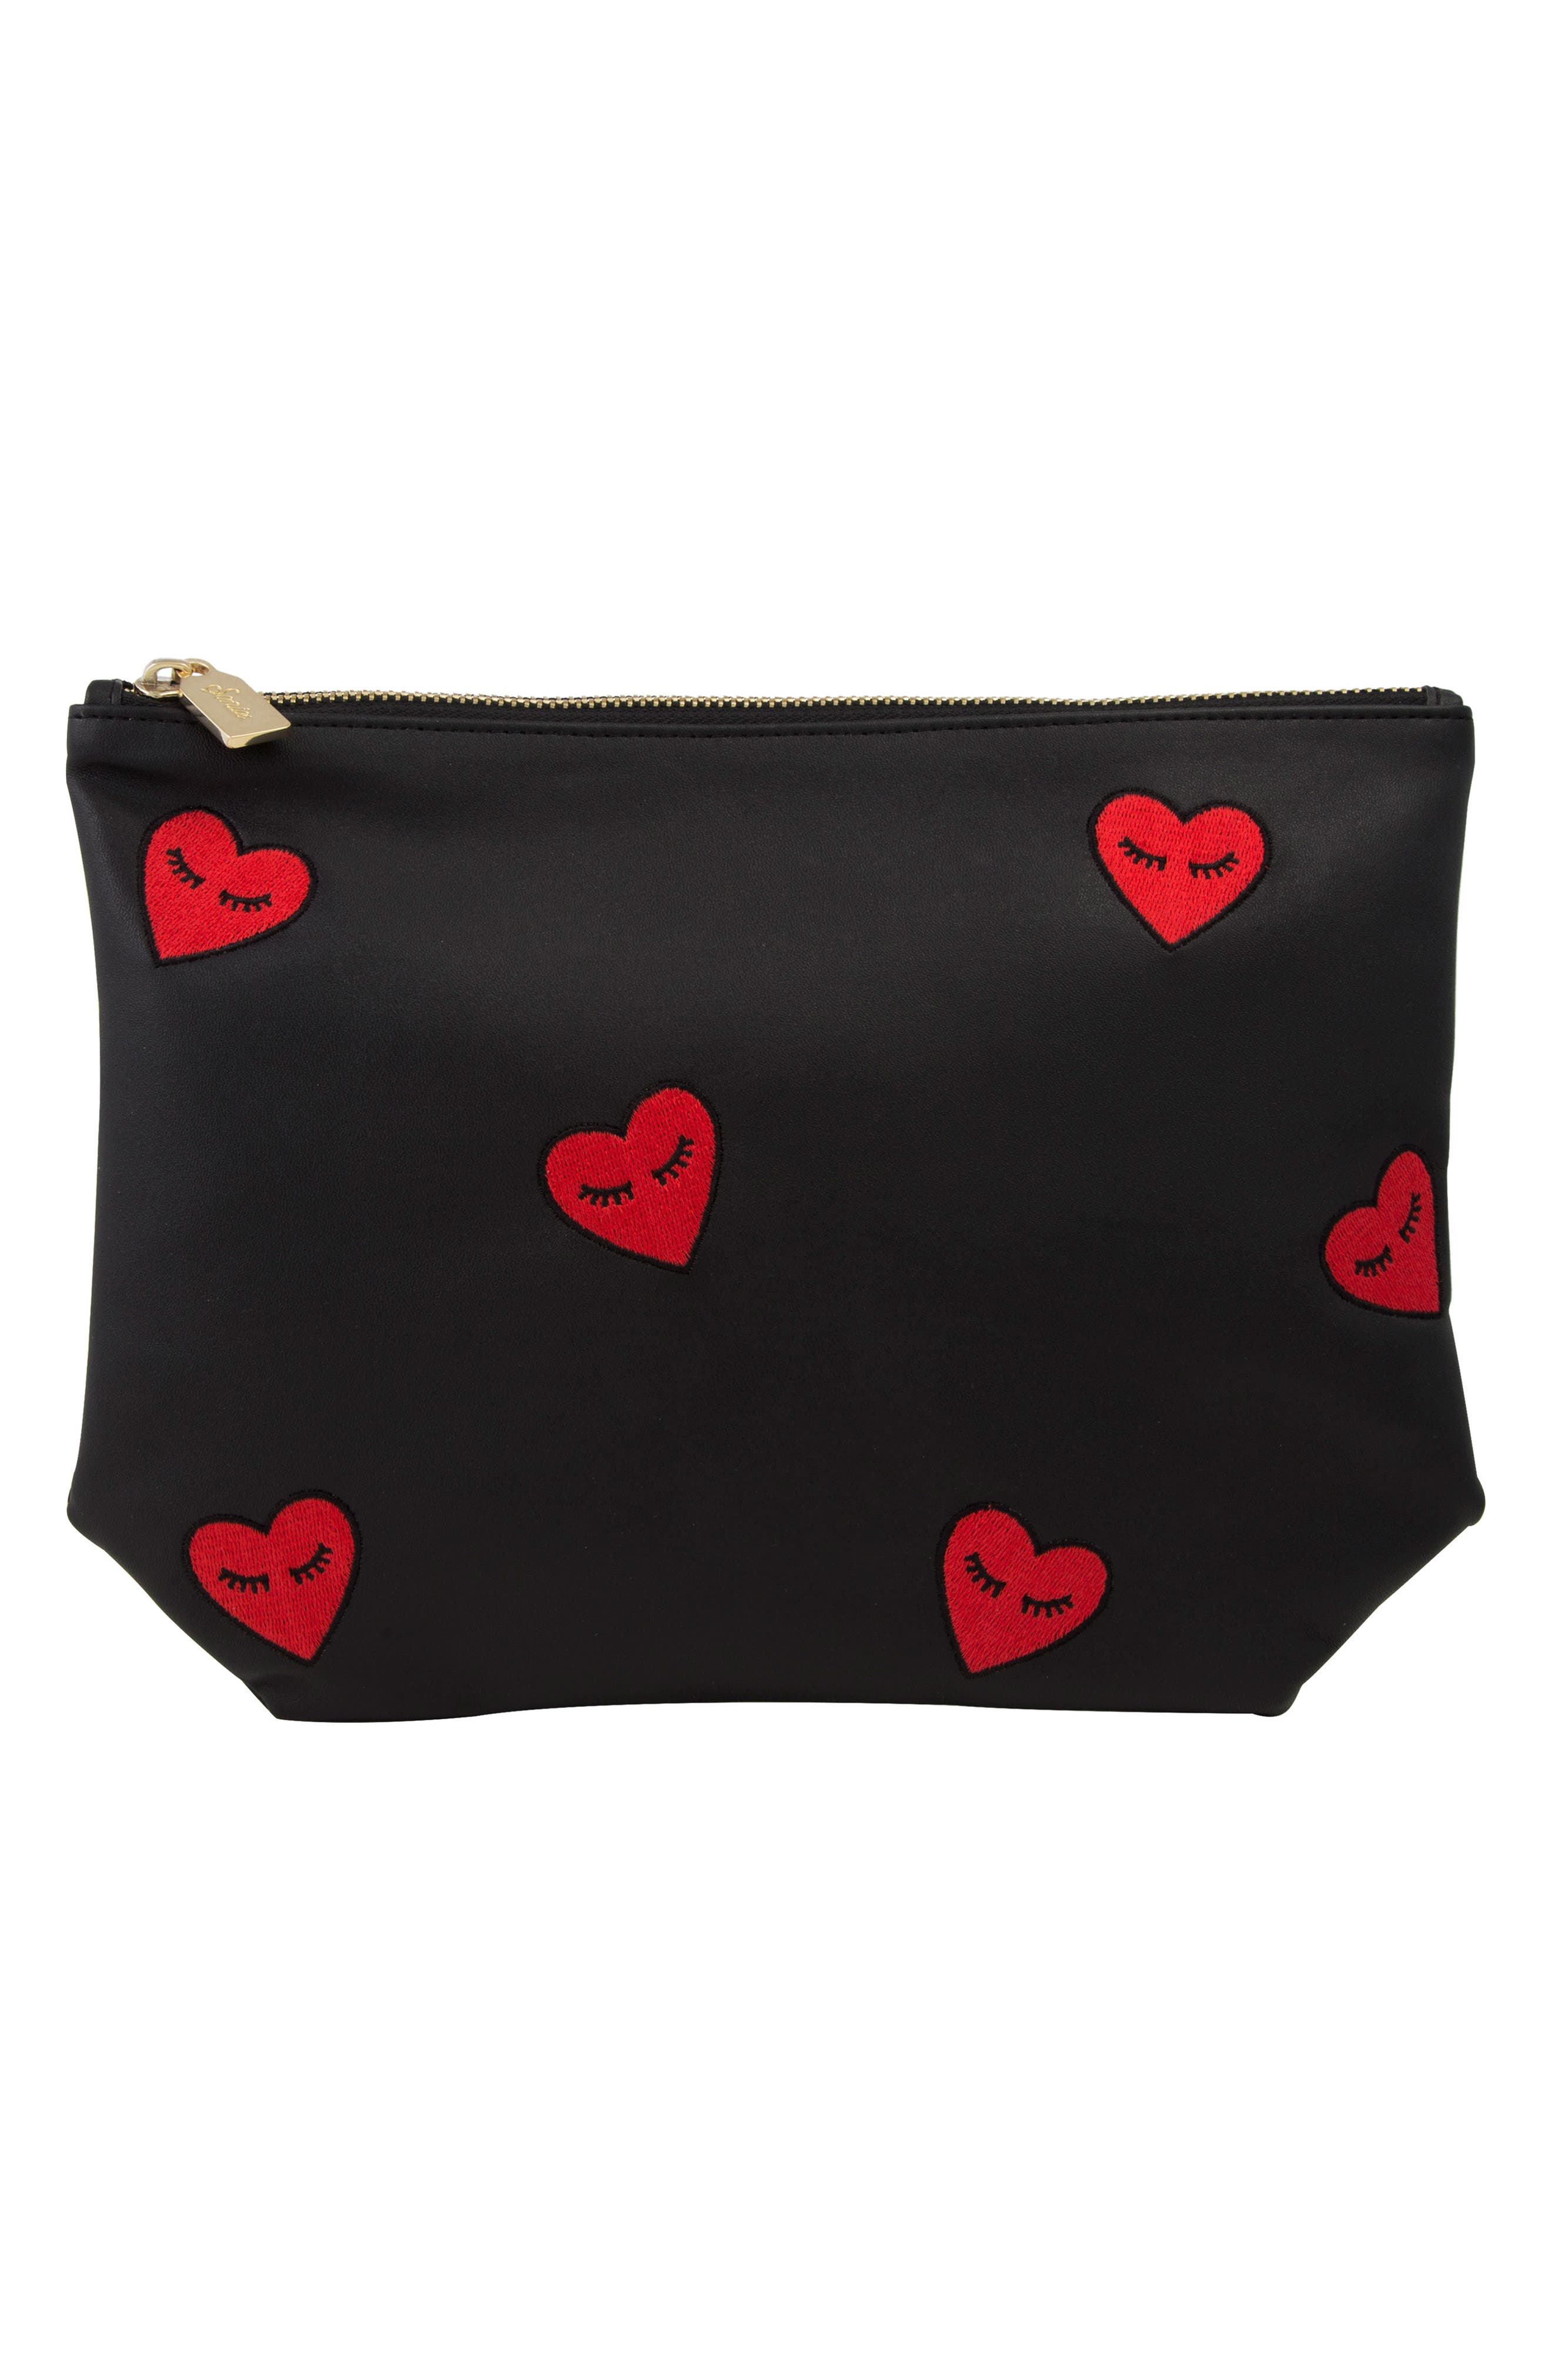 Fancy Hearts Faux Leather Everyday Pouch,                         Main,                         color, Black